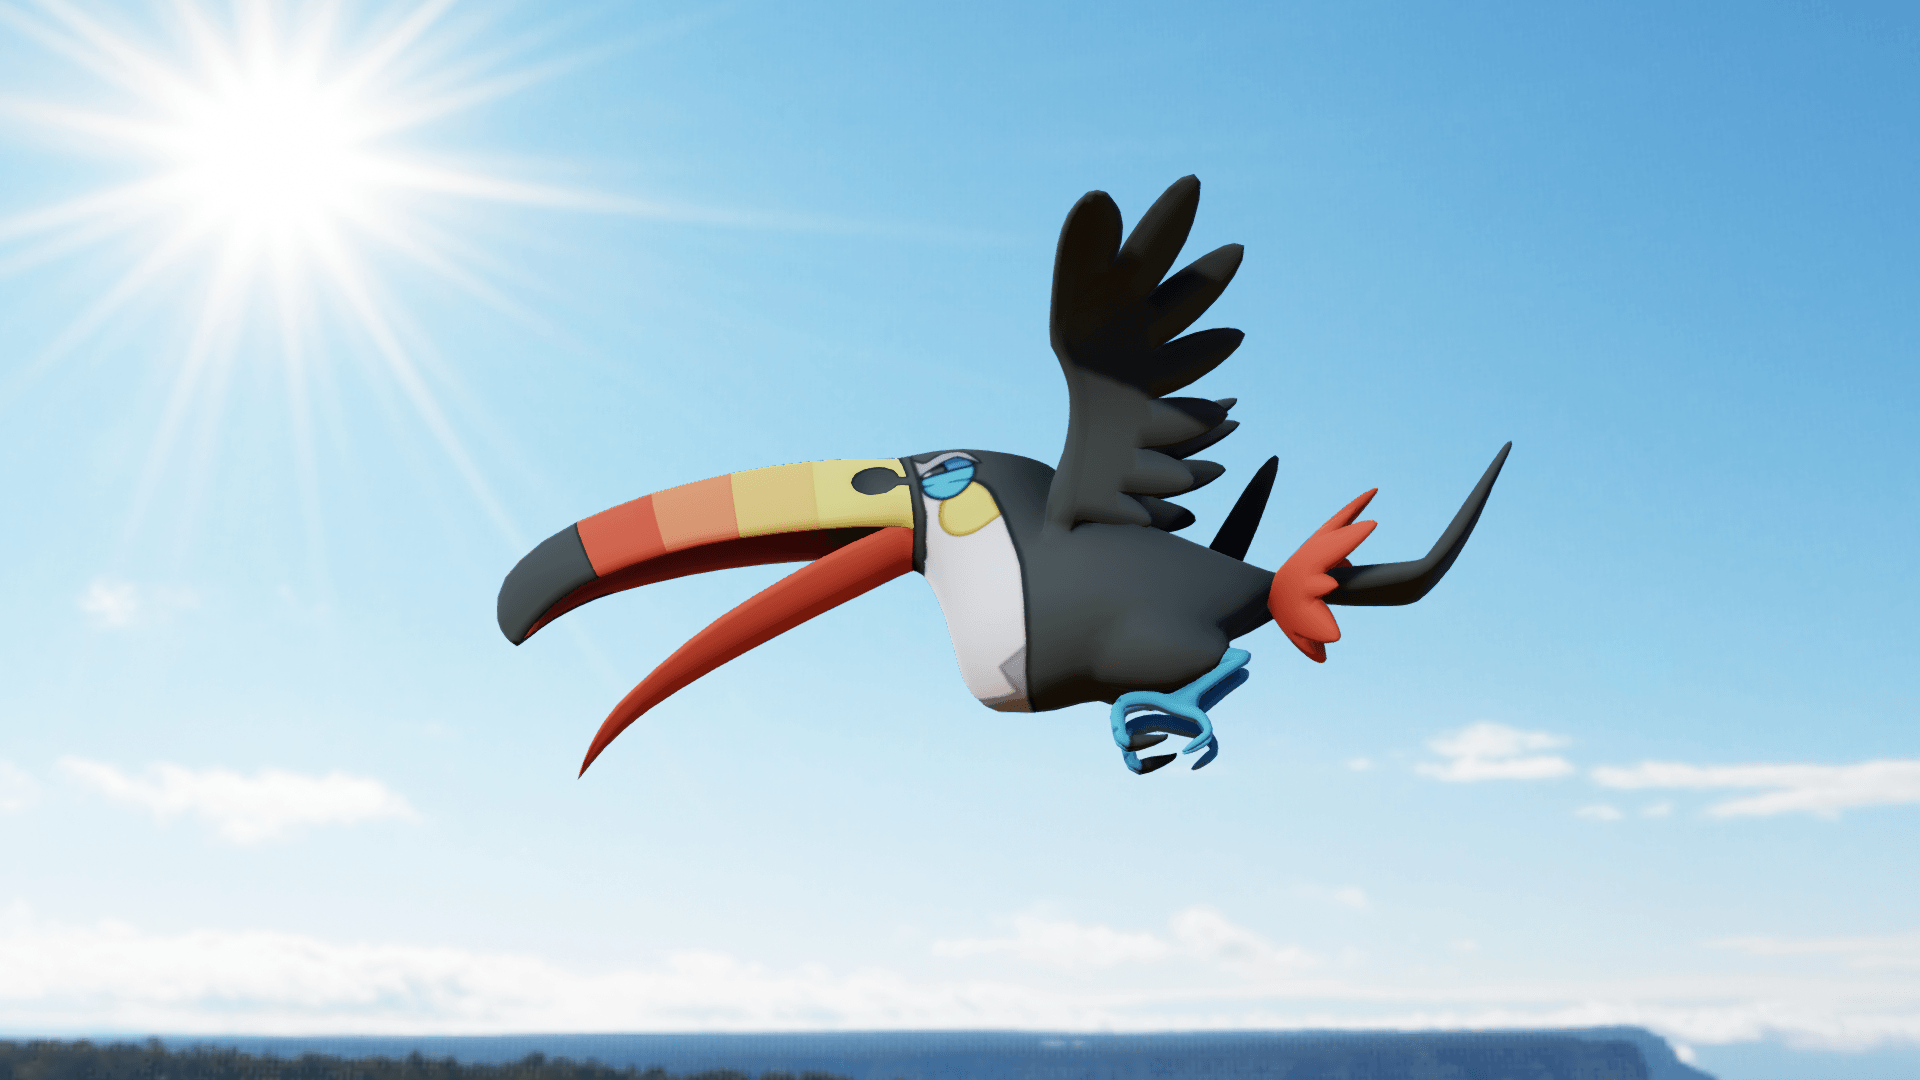 Toucannon DL by Tsuna178